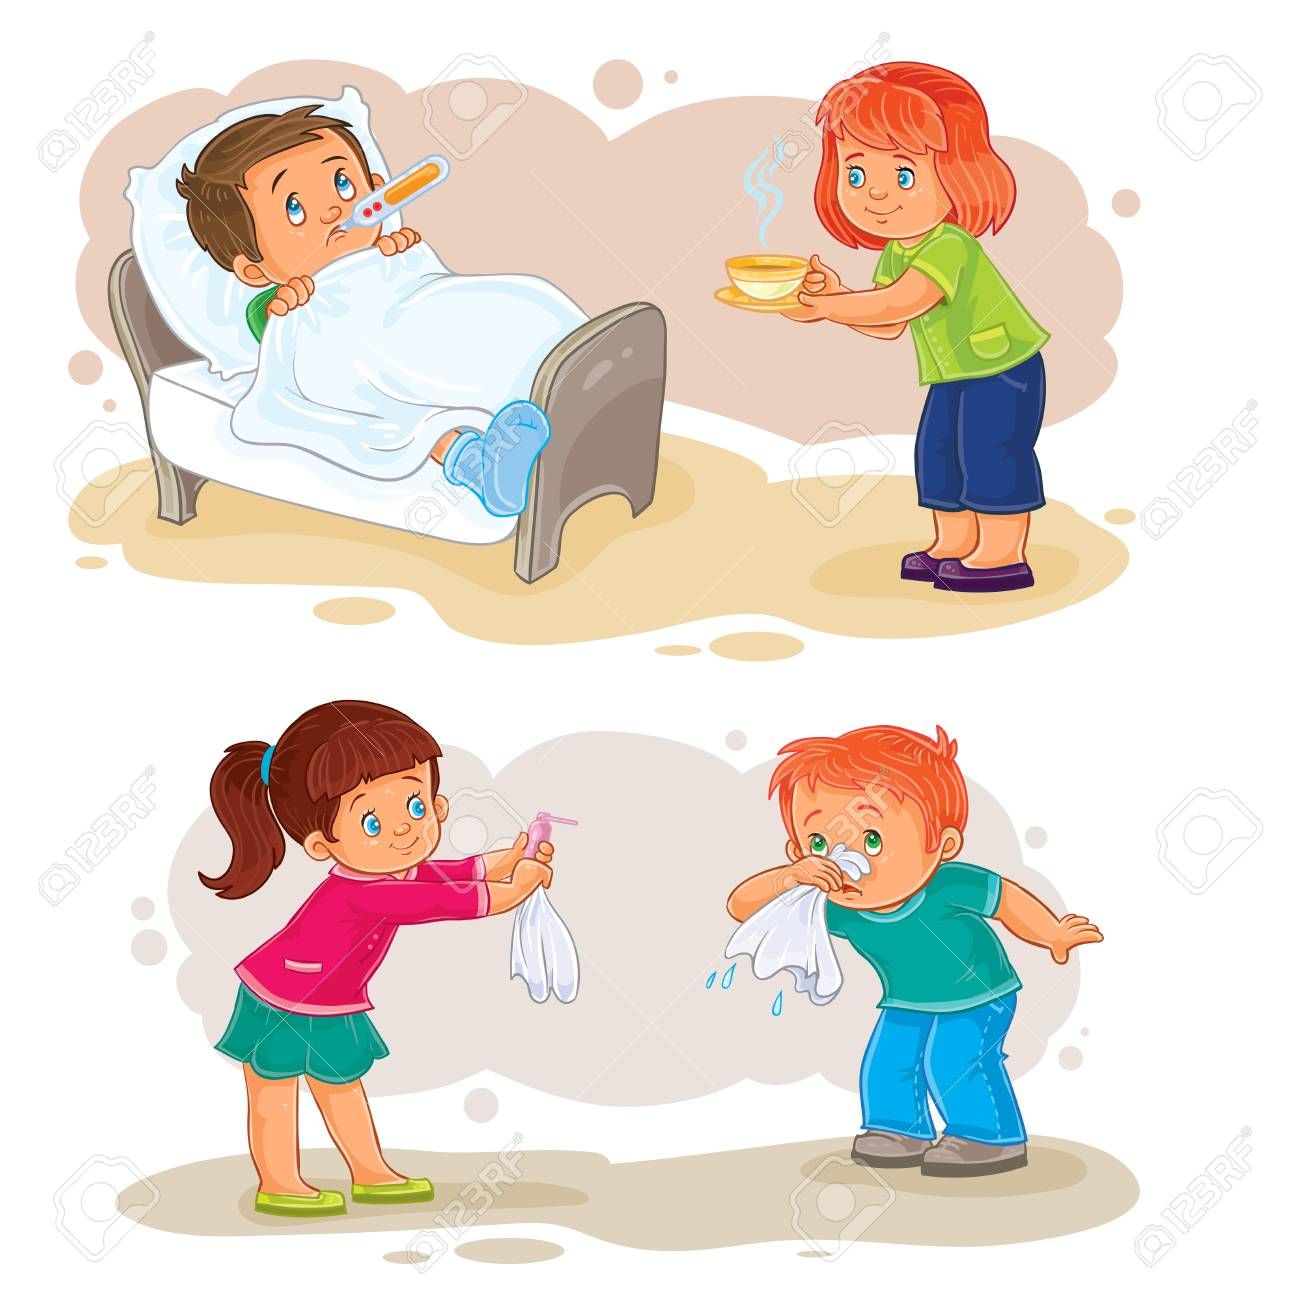 Set Of Clip Art Illustrations Little Boy Sick And Compassionate Stock Photo Picture And Royalty Free Image Image 75551018